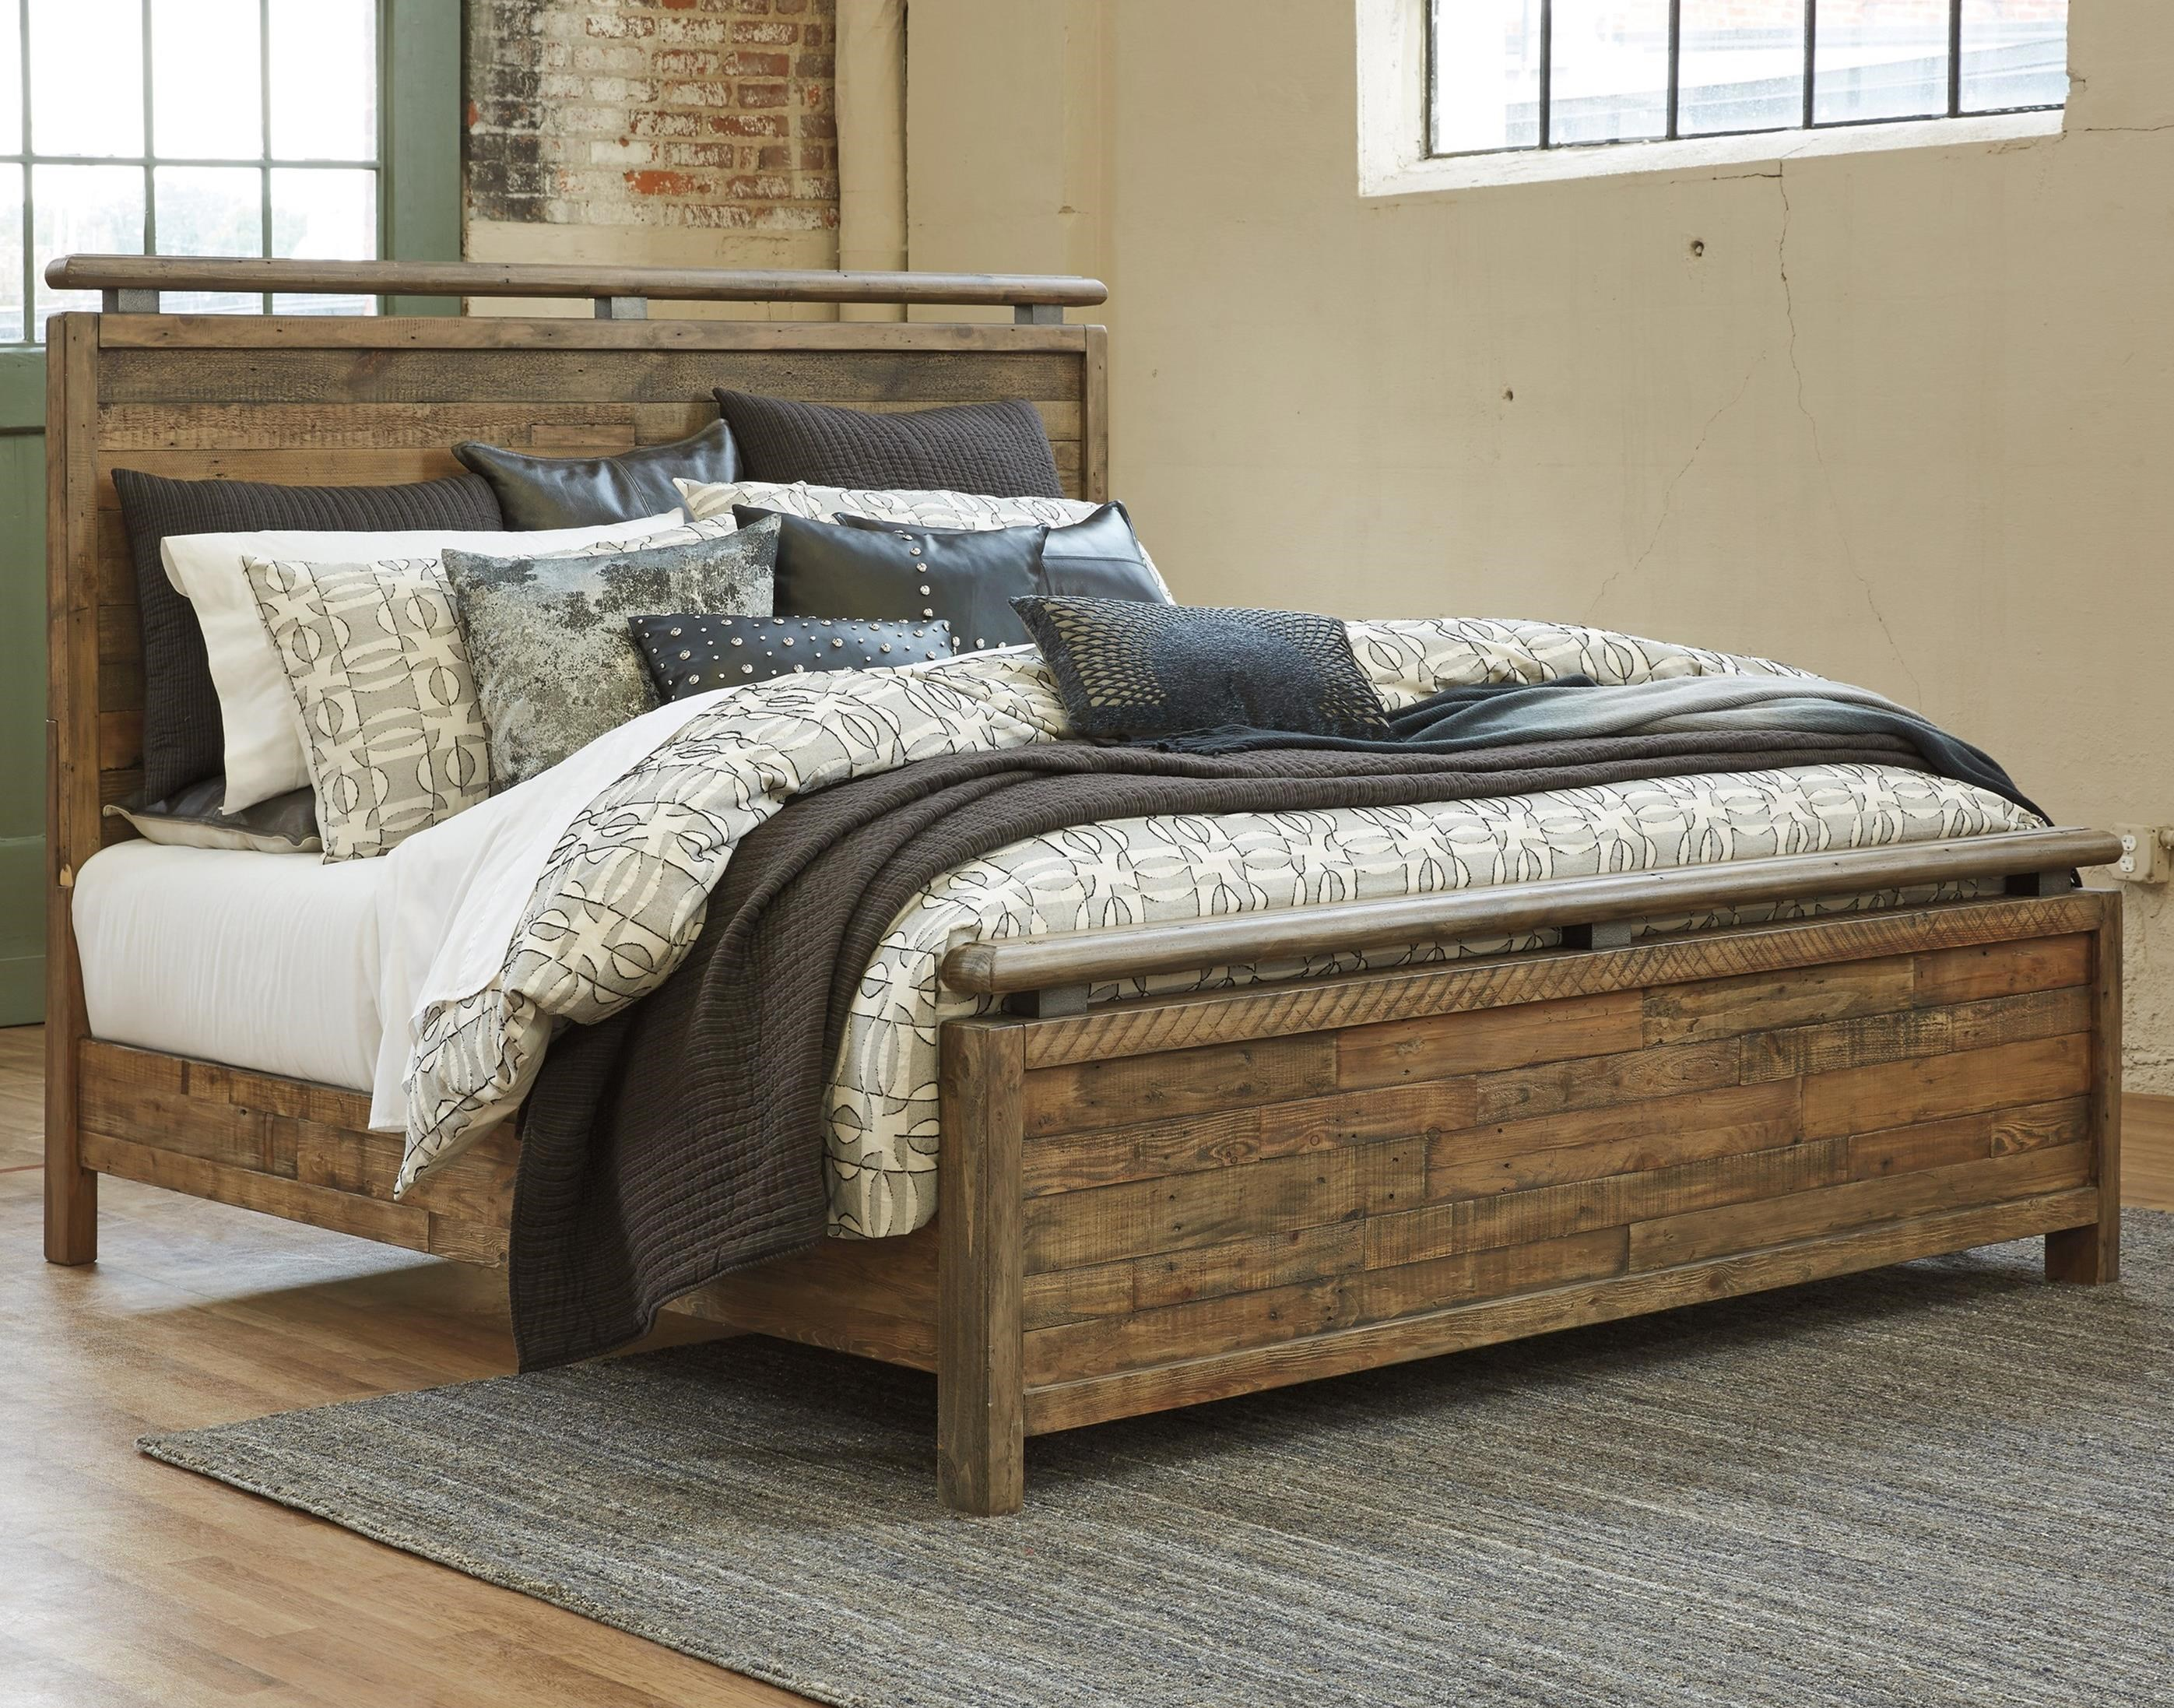 Signature Design By Ashley Sommerford California King Panel Bed Made With Reclaimed Pine Solid